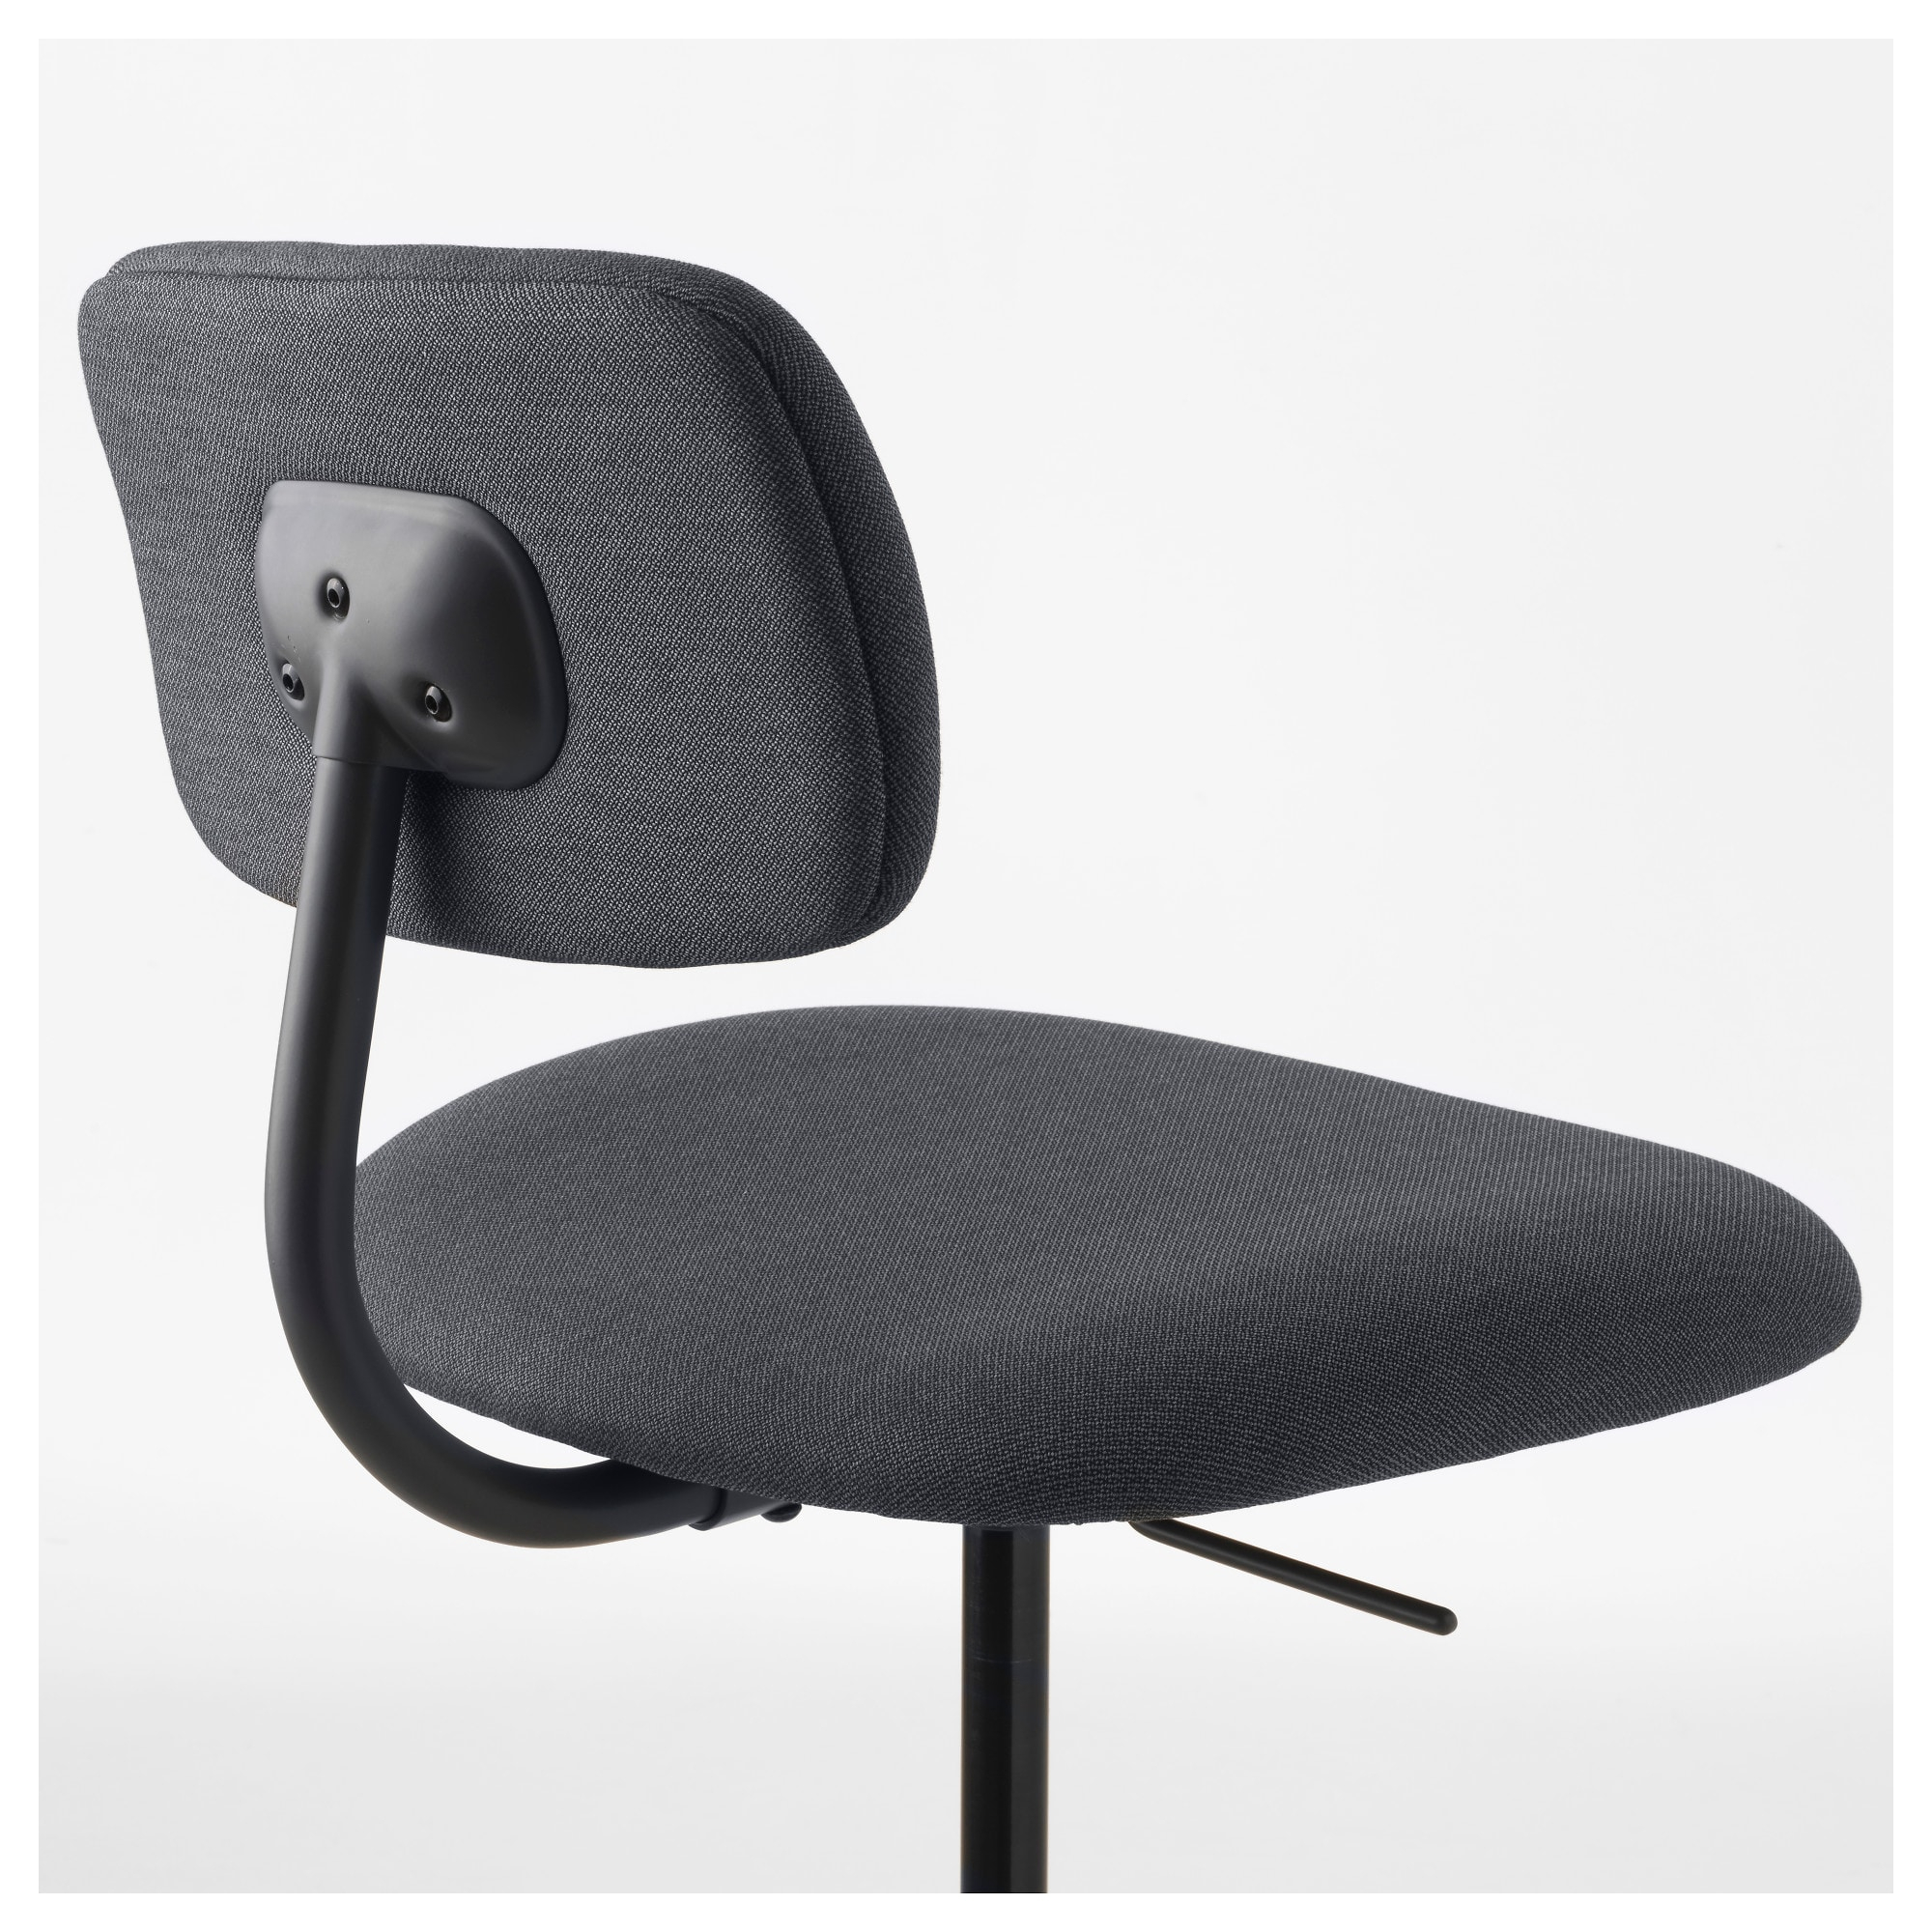 Bleckberget Swivel Chair Idekulla Dark Grey – Ikea With Grey Swivel Chairs (View 22 of 25)